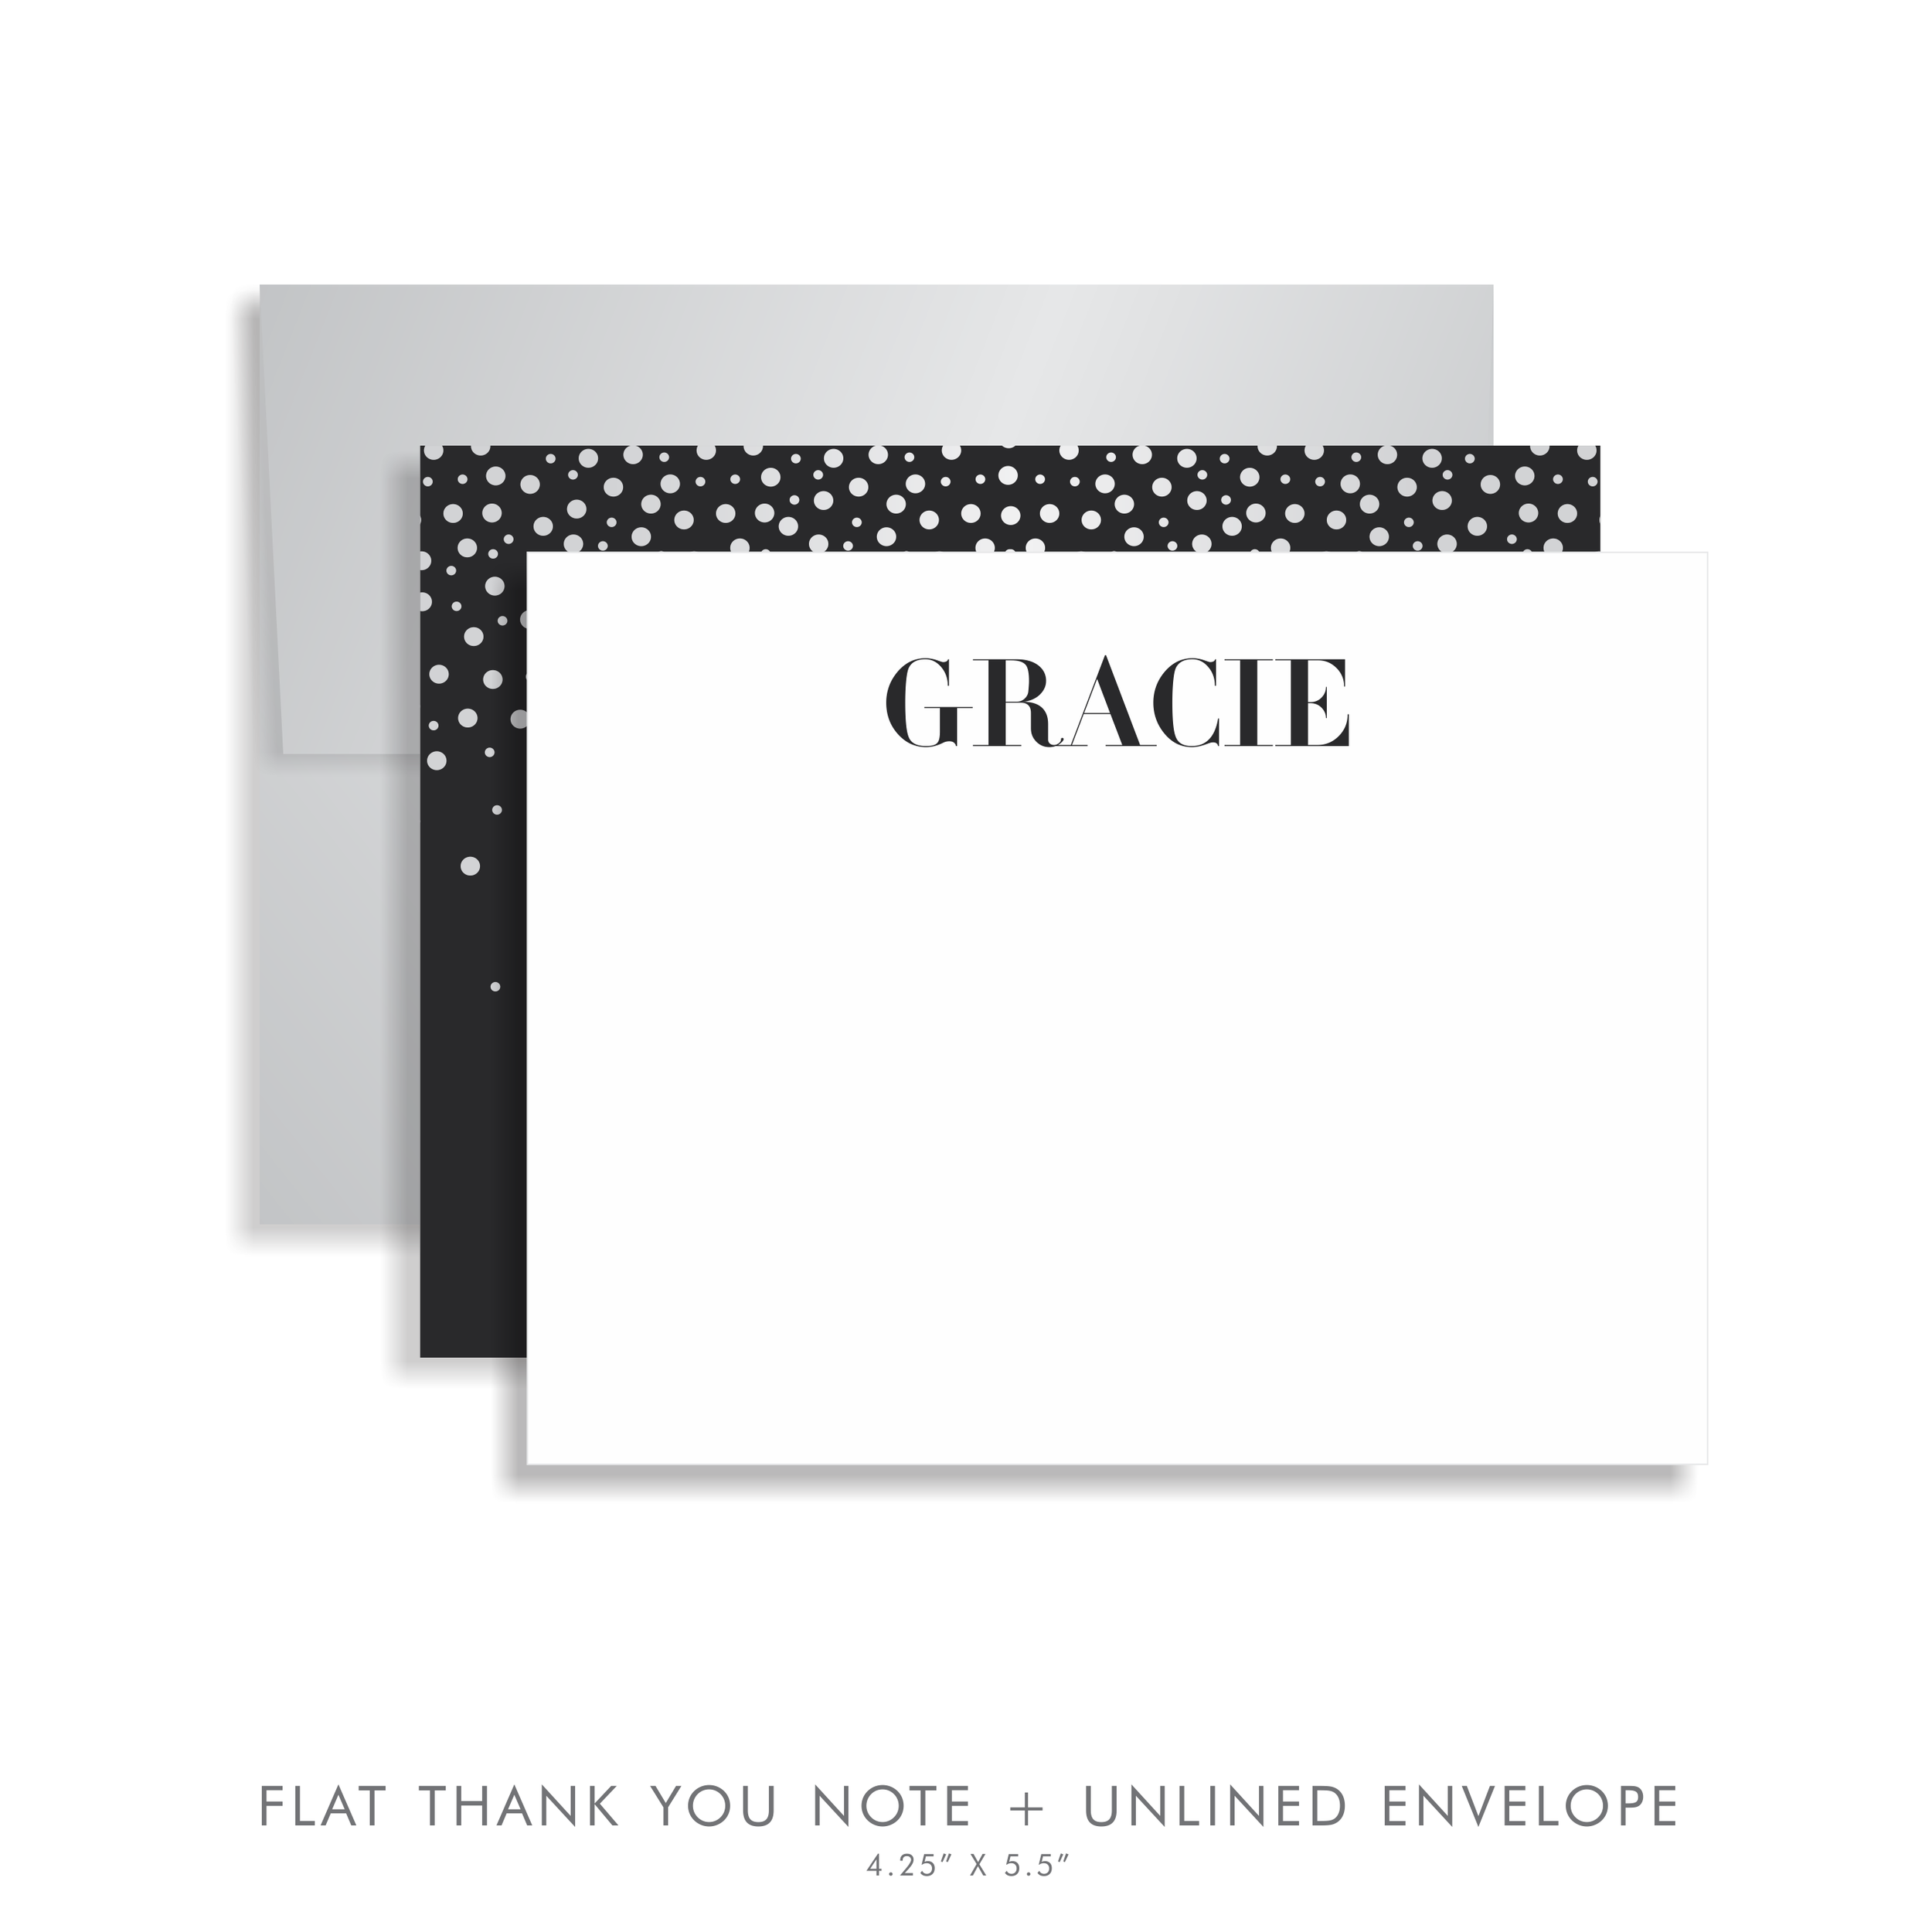 06 BAT MITZVAH INVITATION 5338 FLAT THANK YOU NOTE s.png